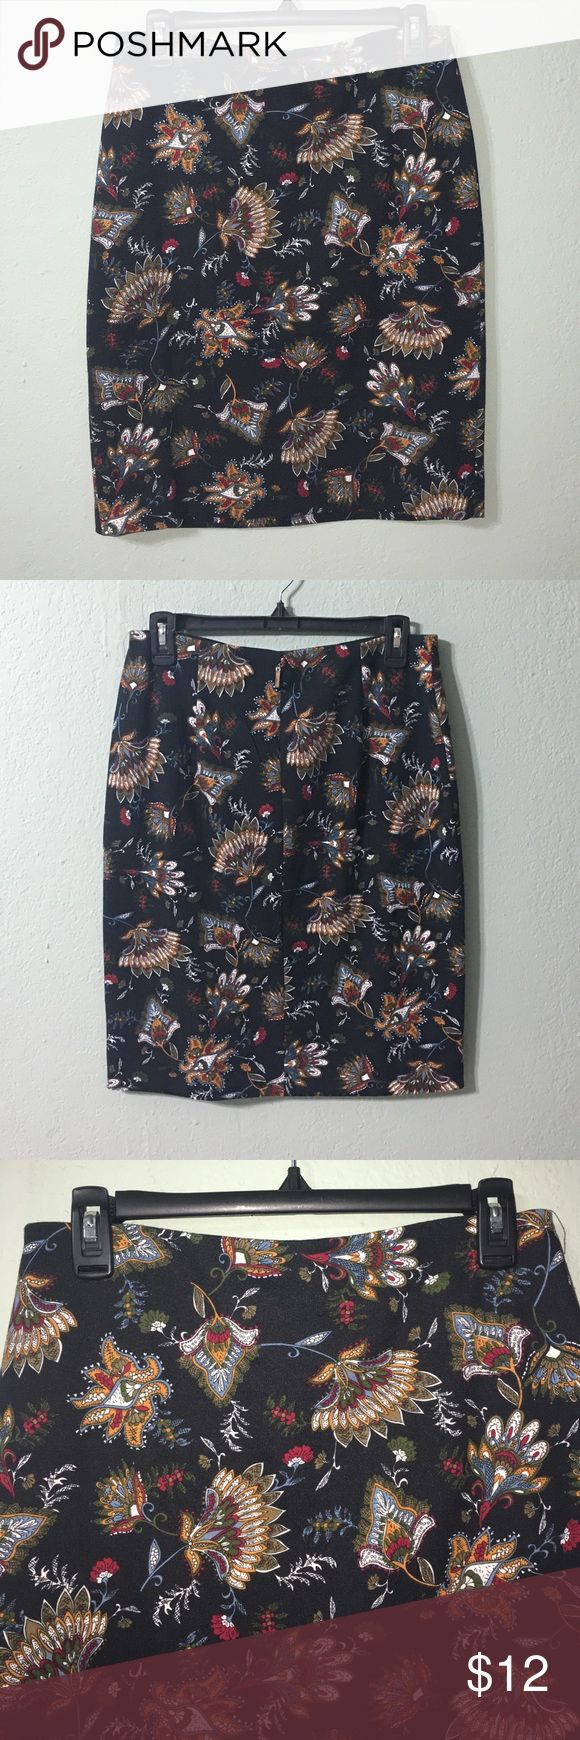 Black multi color Grace Elements skirt. Black multi color skirt with elastic waistband and zipper stretch material. Skirt is a size small but will fit a size medium/large if you like the skirt with a tighter fit. Grace Elements Skirts Midi